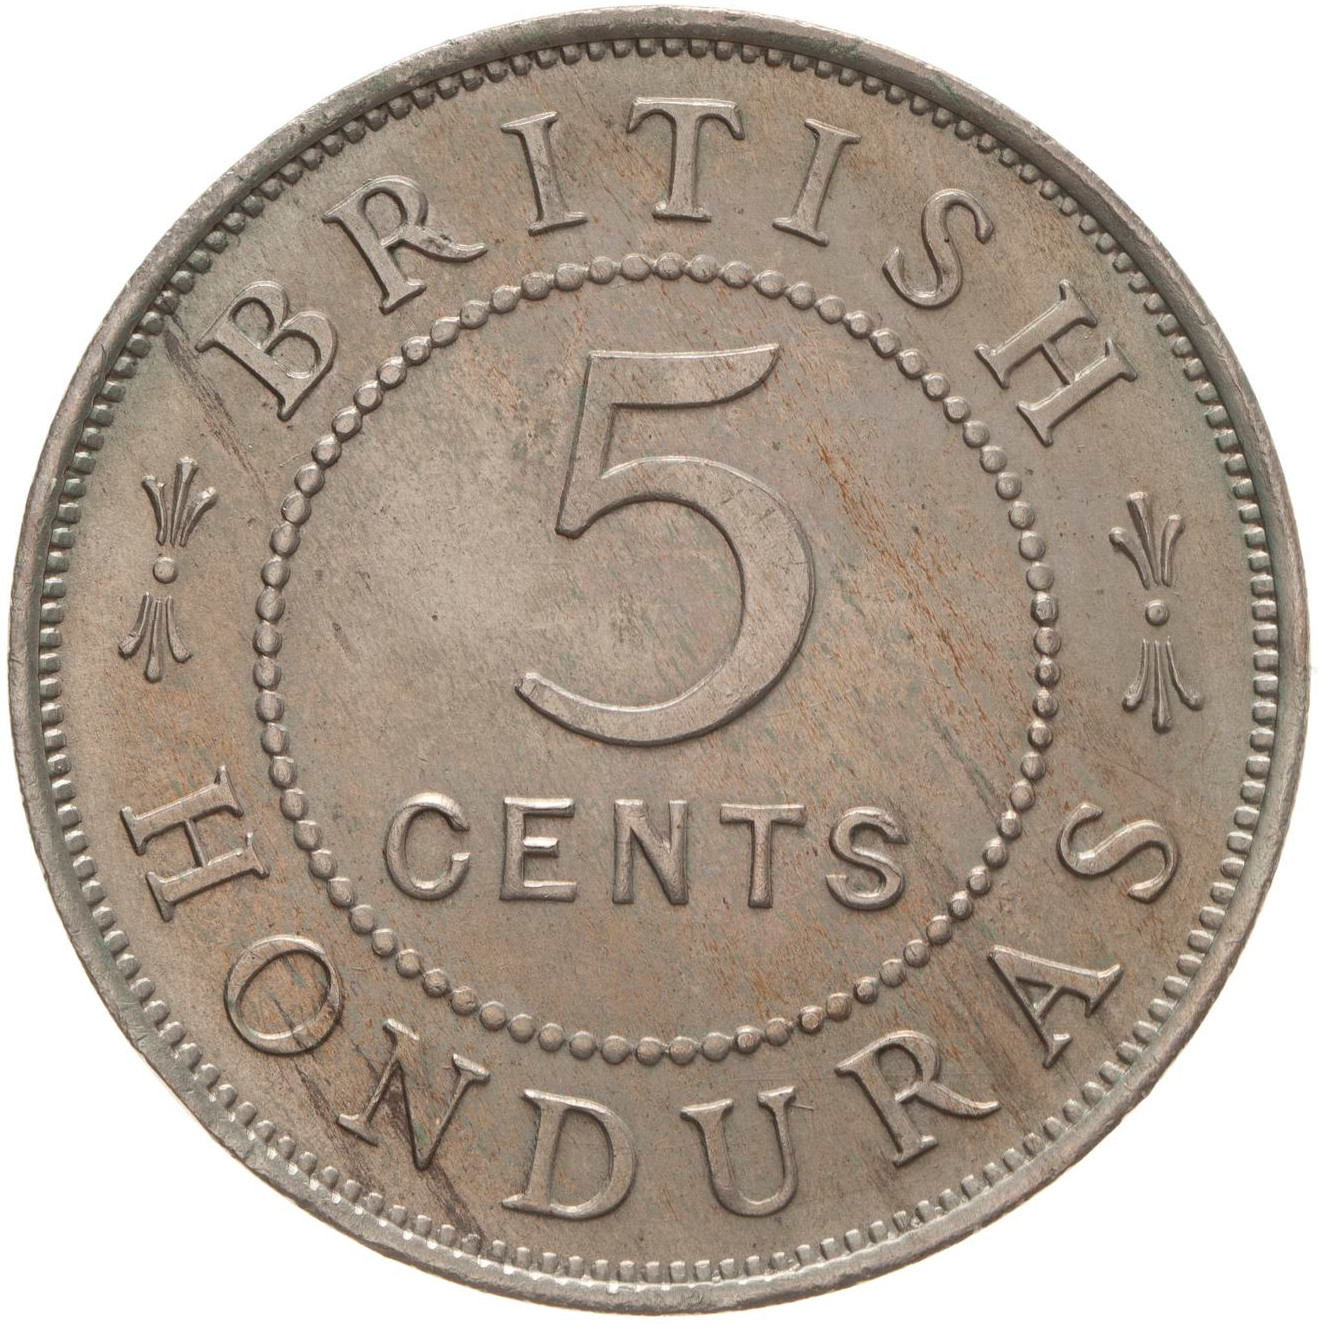 Five Cents: Photo Coin - 5 Cents, British Honduras (Belize), 1907